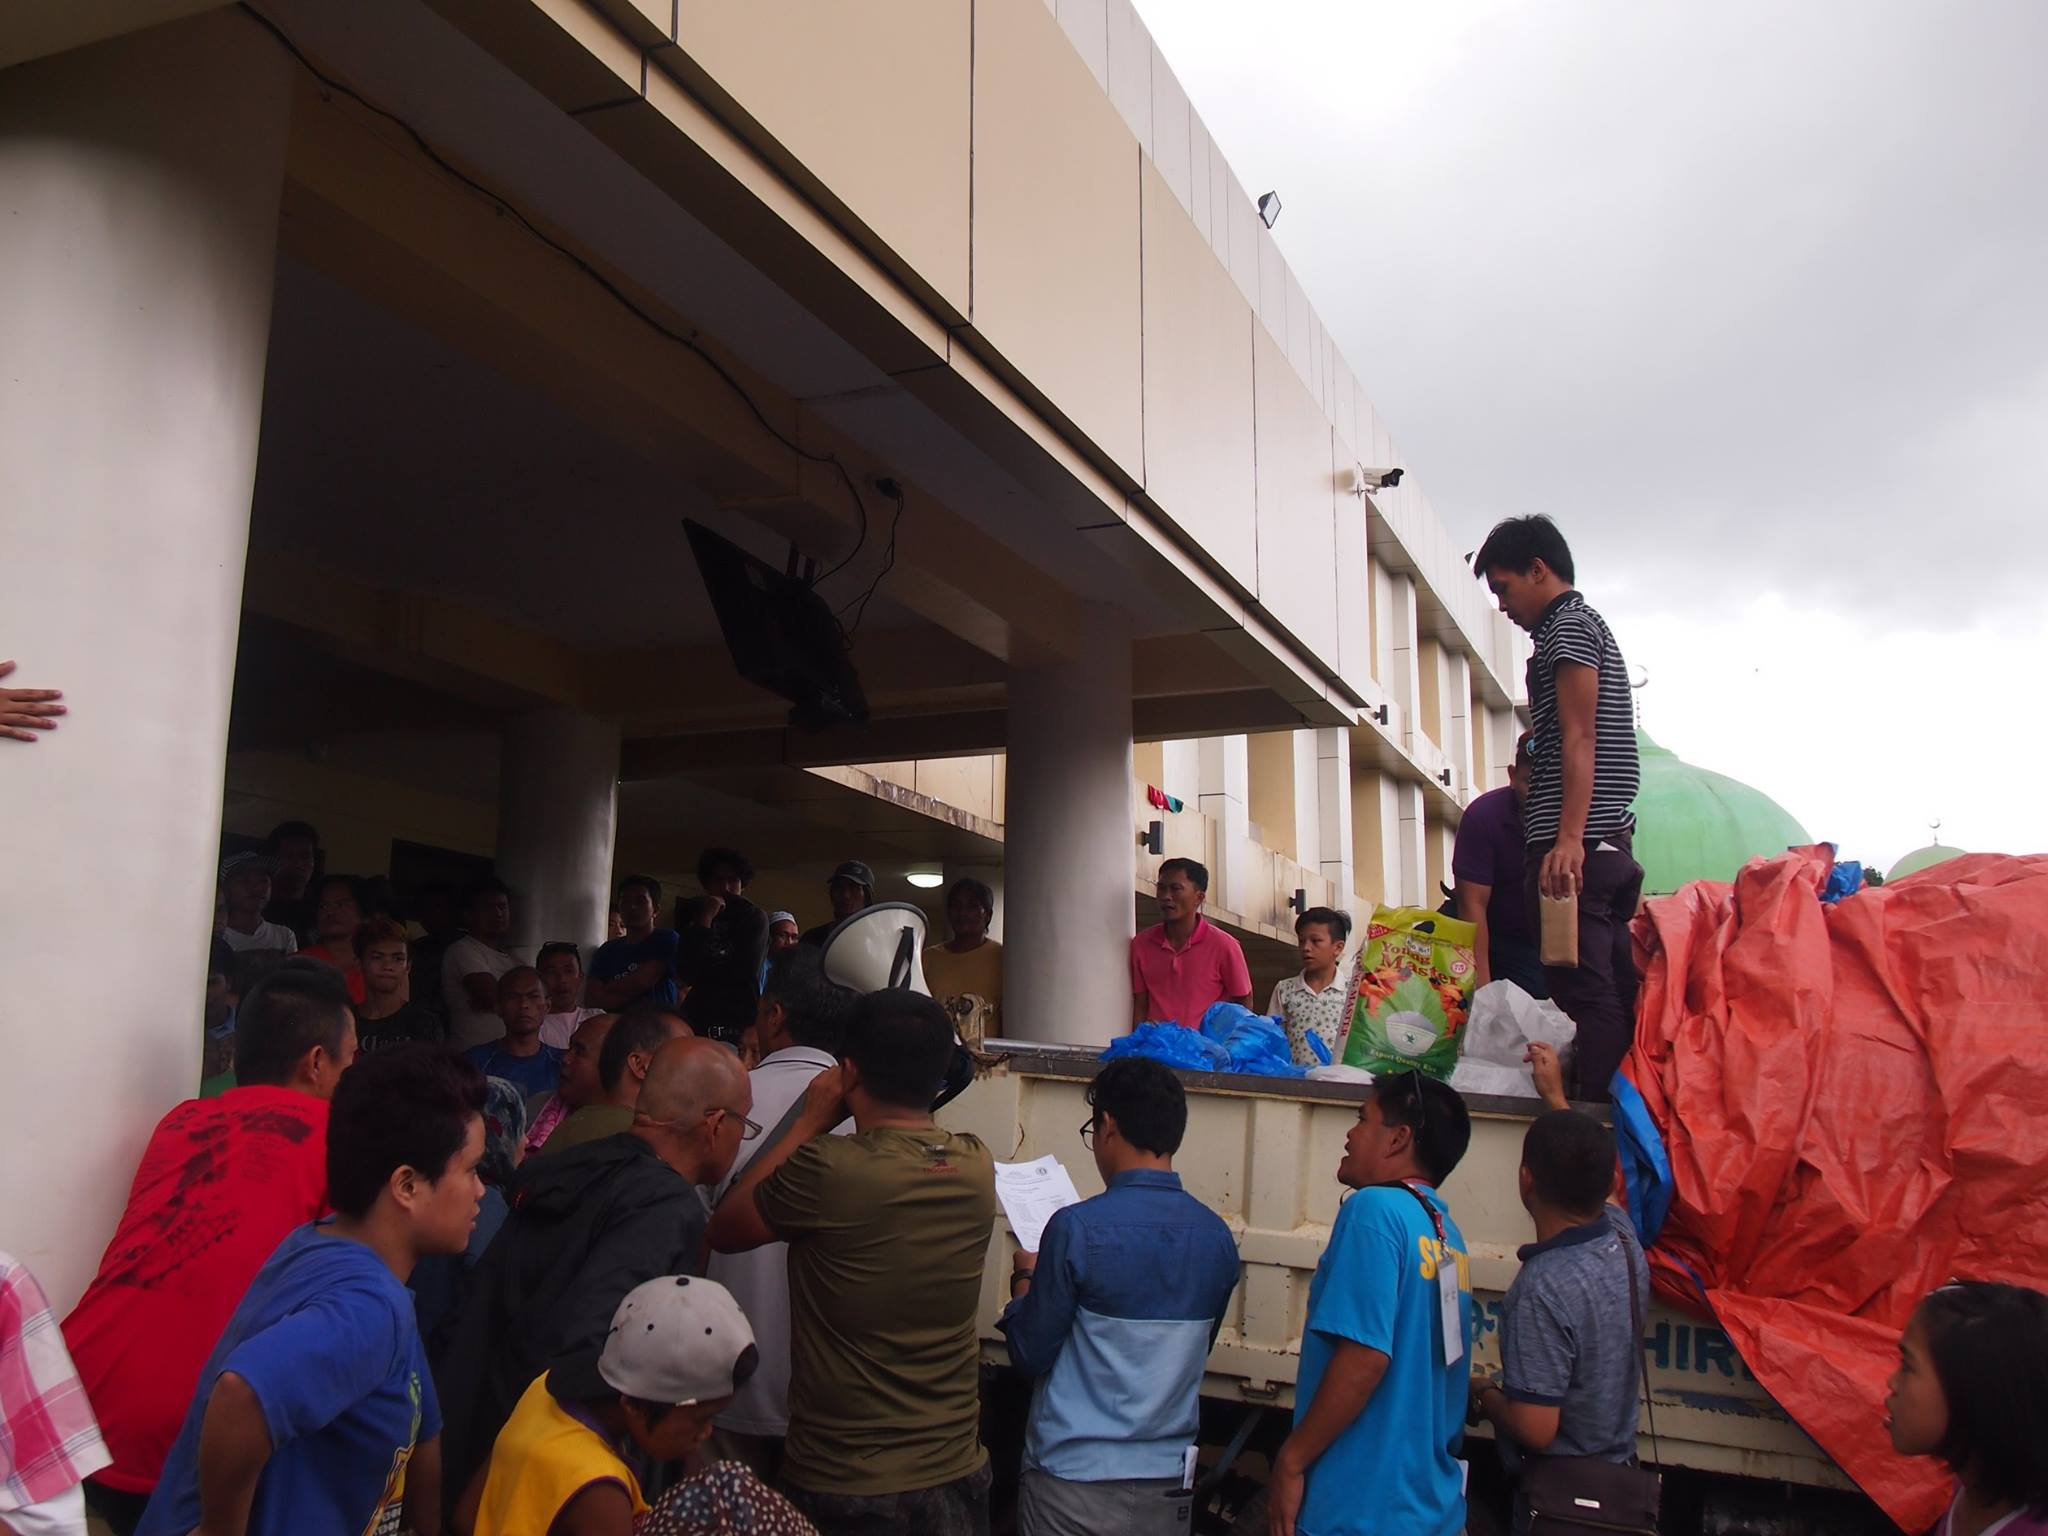 30 Food assistance for Marawi internal displaced peoples, Marawi, Philippines 2017